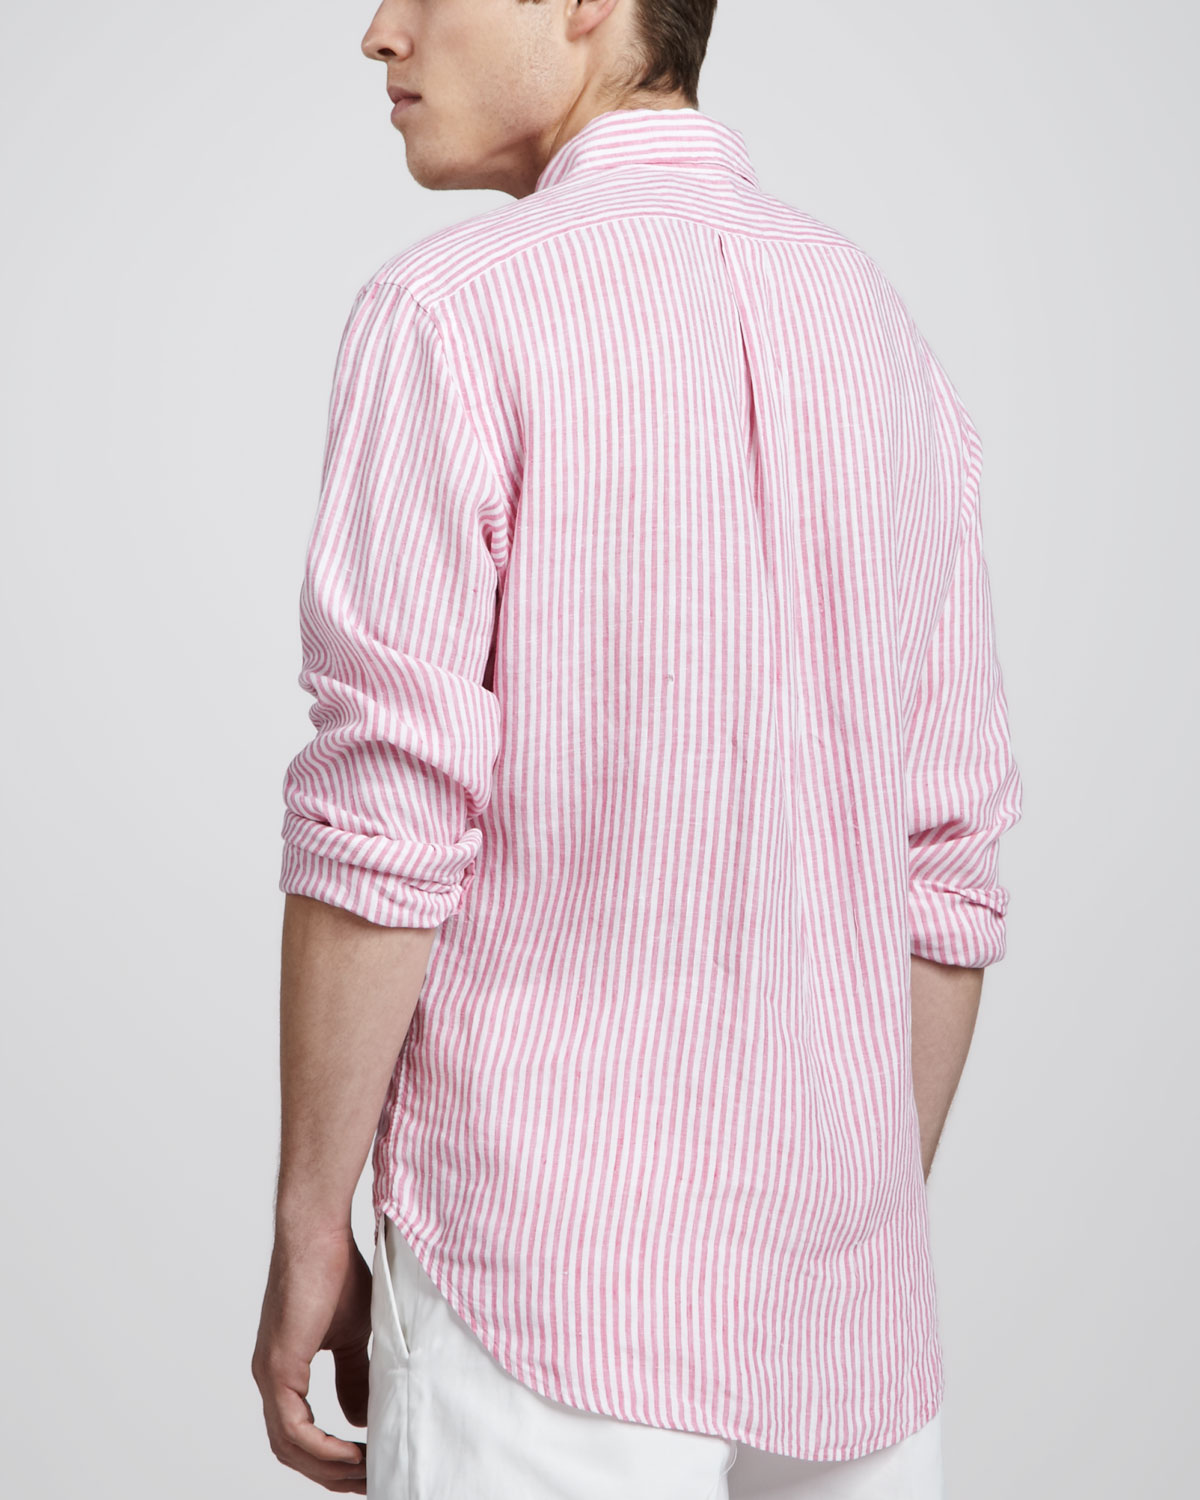 cd506b4a70b ... coupon code for lyst polo ralph lauren striped linen sport shirt in  pink for men f1165